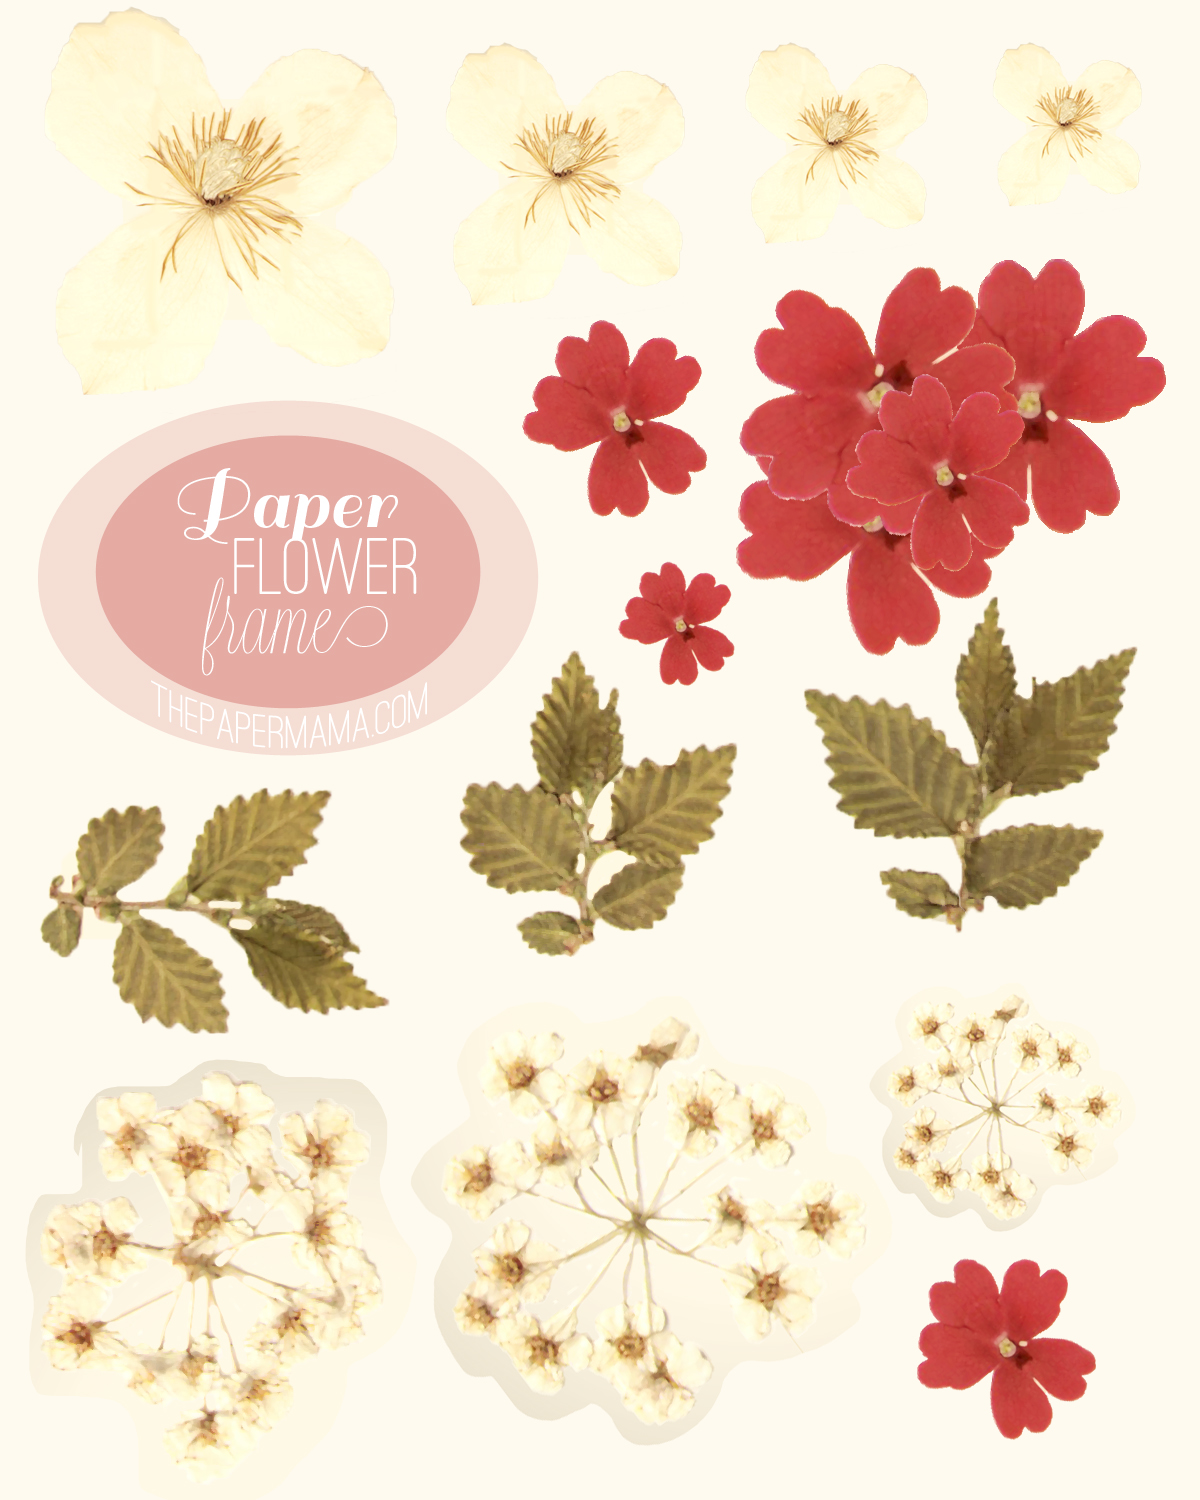 you can download the flower printouts here here